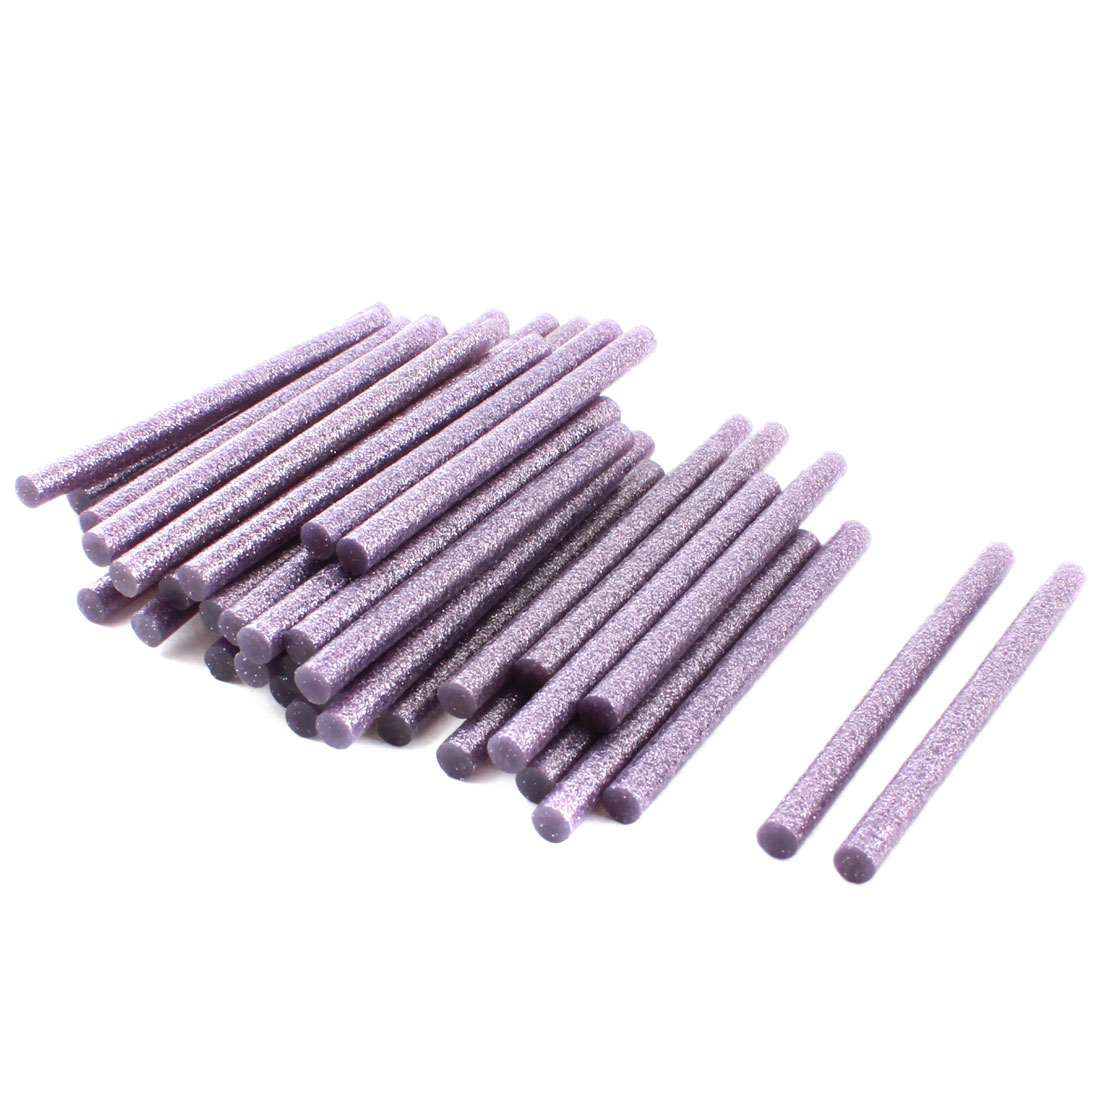 "0.28"" x 4"" Light Purple Glitter Electric Hot Melt Gun Glue Adhesive Sticks 50Pcs"